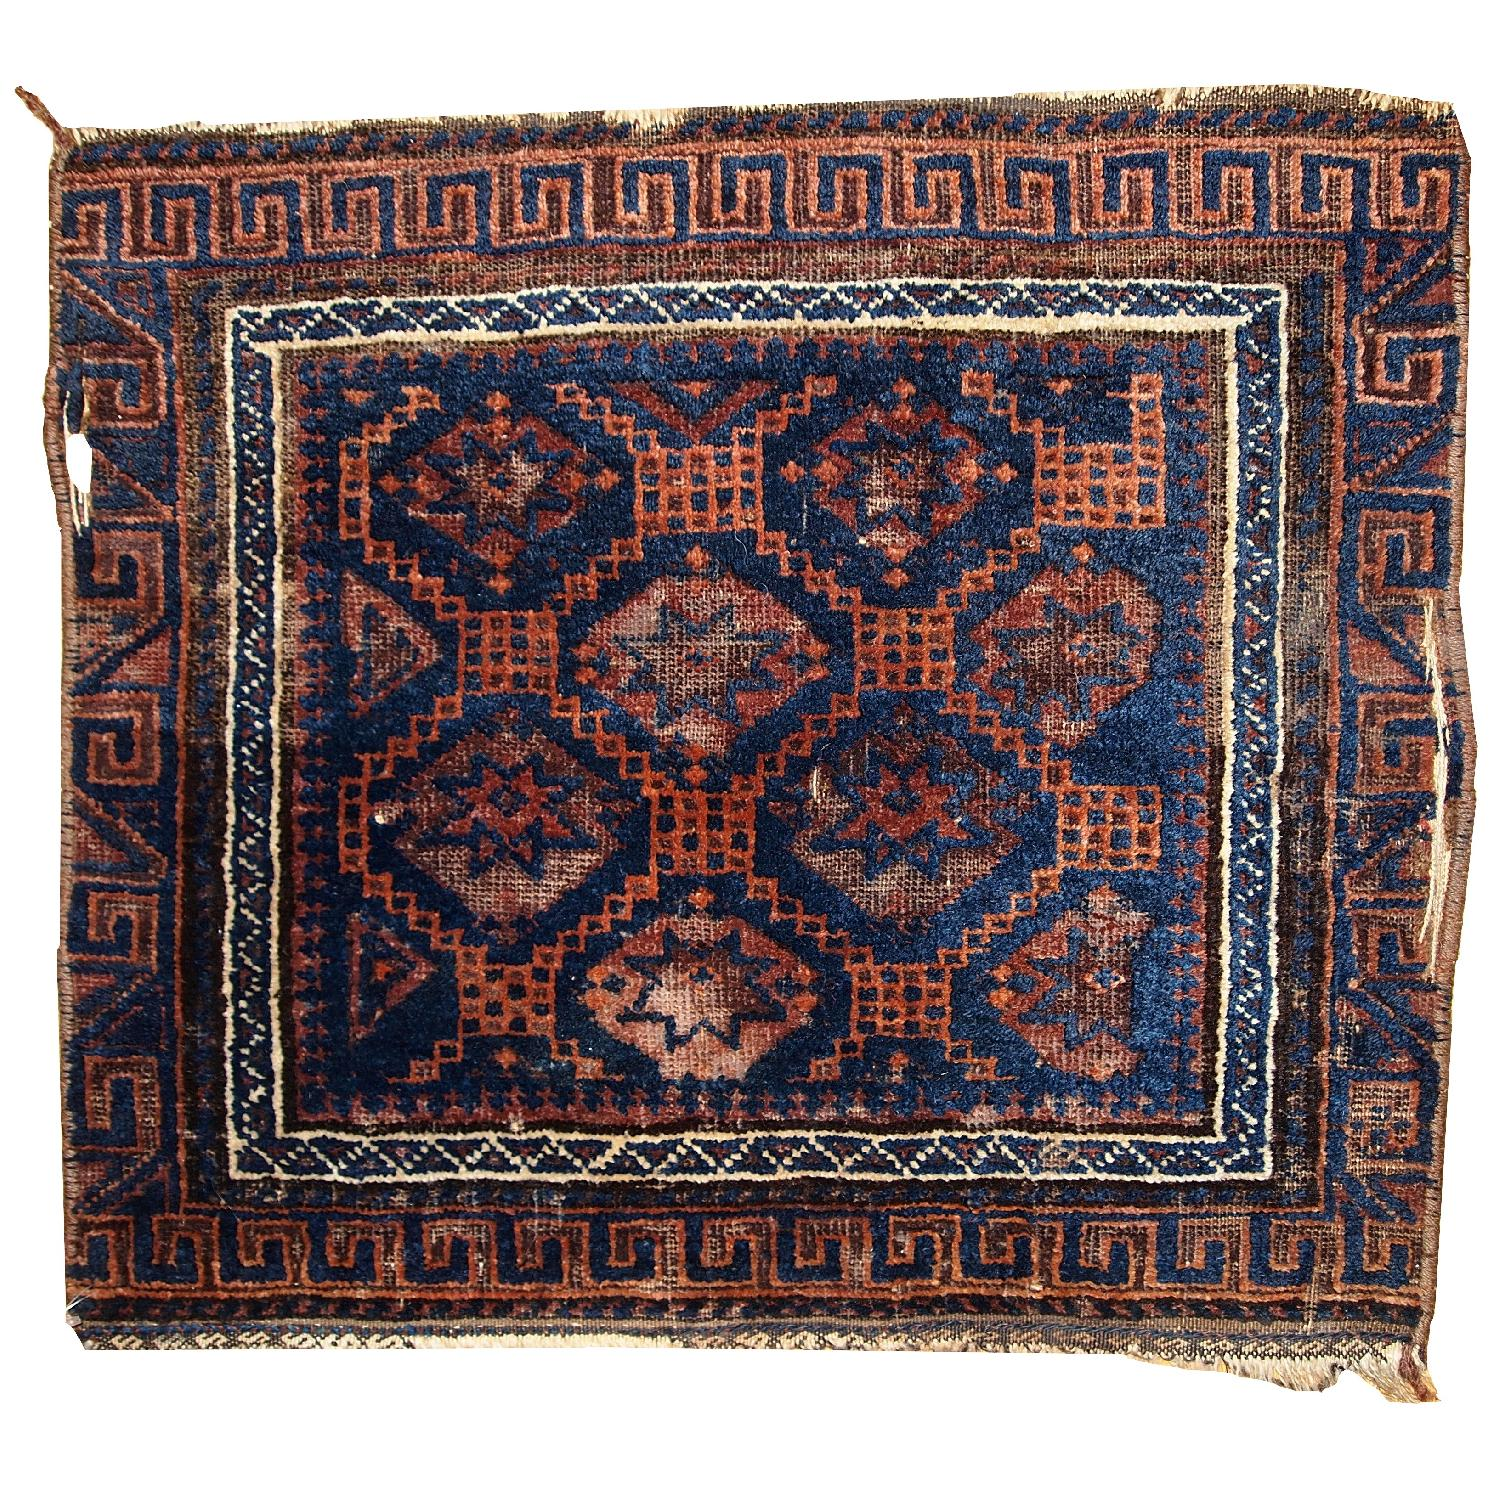 Antique Handmade Collectible Afghan Baluch Bag Face Rug - image-0